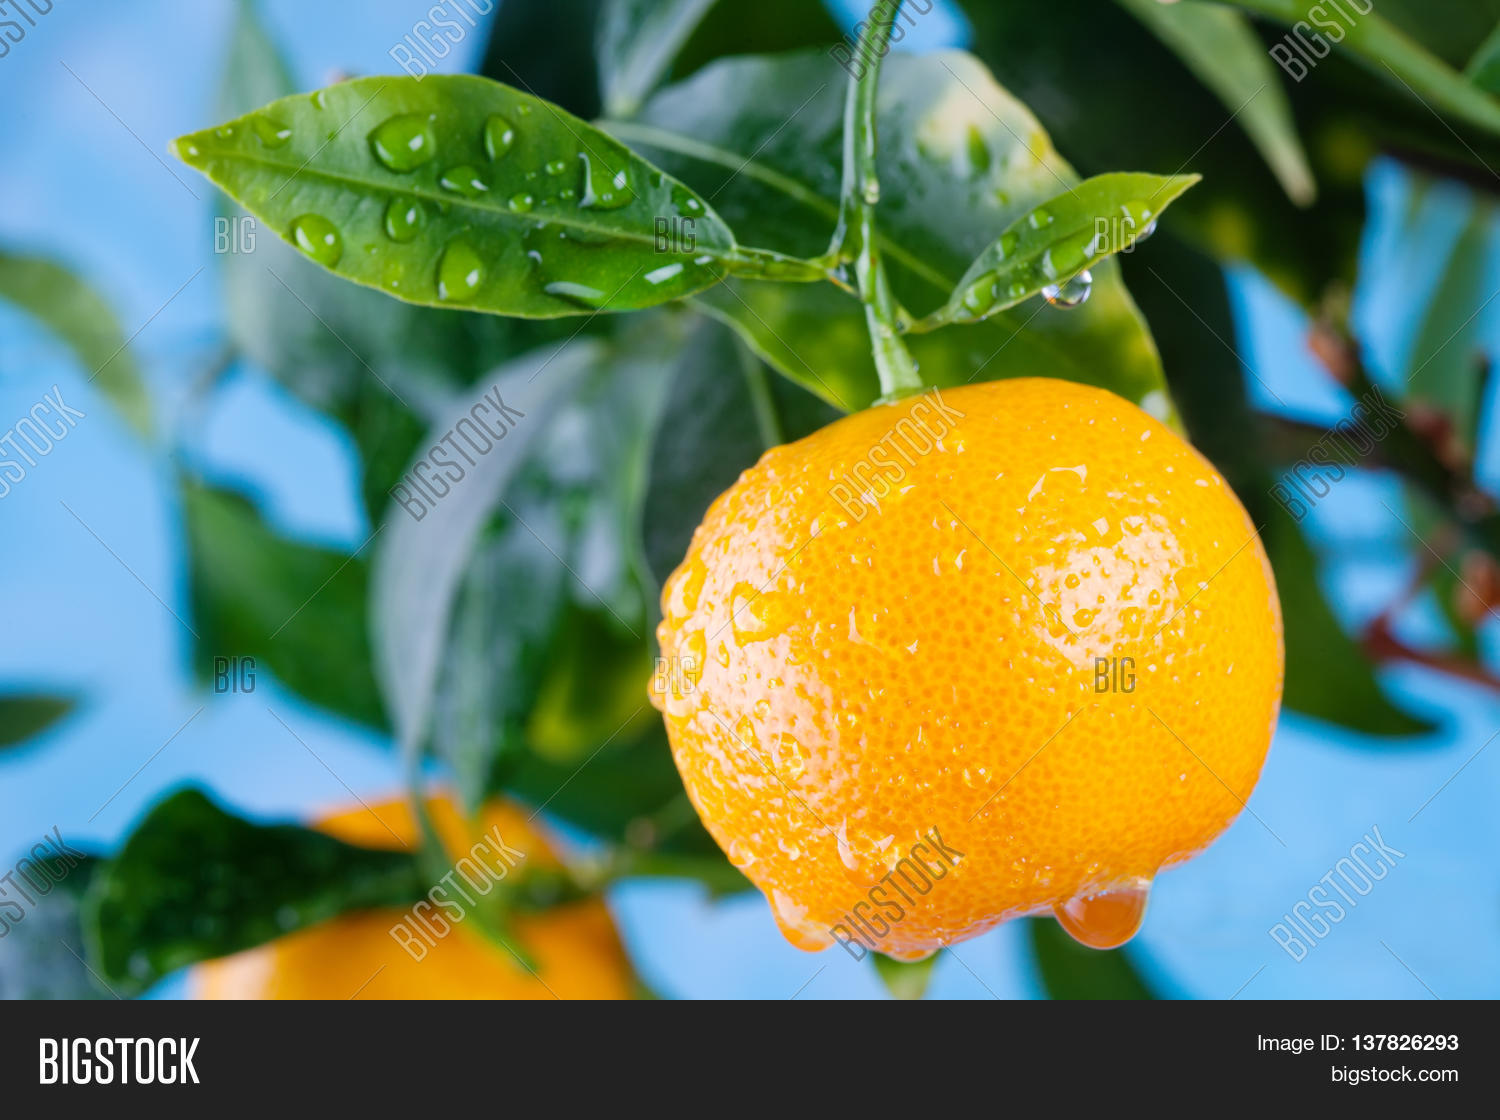 Sweet Citrus Orange Mandarin Fruits Branch In The Garden Summer Time  With Hot Citrus Orange Mandarin Fruits Branch In The Garden Summer Time Photo Orange  Tree With Cool Crystal Palace Gardens Also Garden Birds Uk Identify In Addition Old Street To Covent Garden And Billy Joel At Madison Square Garden As Well As Hatton Garden Opening Times Additionally Garden Stepping Stones Uk From Bigstockphotocom With   Hot Citrus Orange Mandarin Fruits Branch In The Garden Summer Time  With Cool Citrus Orange Mandarin Fruits Branch In The Garden Summer Time Photo Orange  Tree And Sweet Crystal Palace Gardens Also Garden Birds Uk Identify In Addition Old Street To Covent Garden From Bigstockphotocom